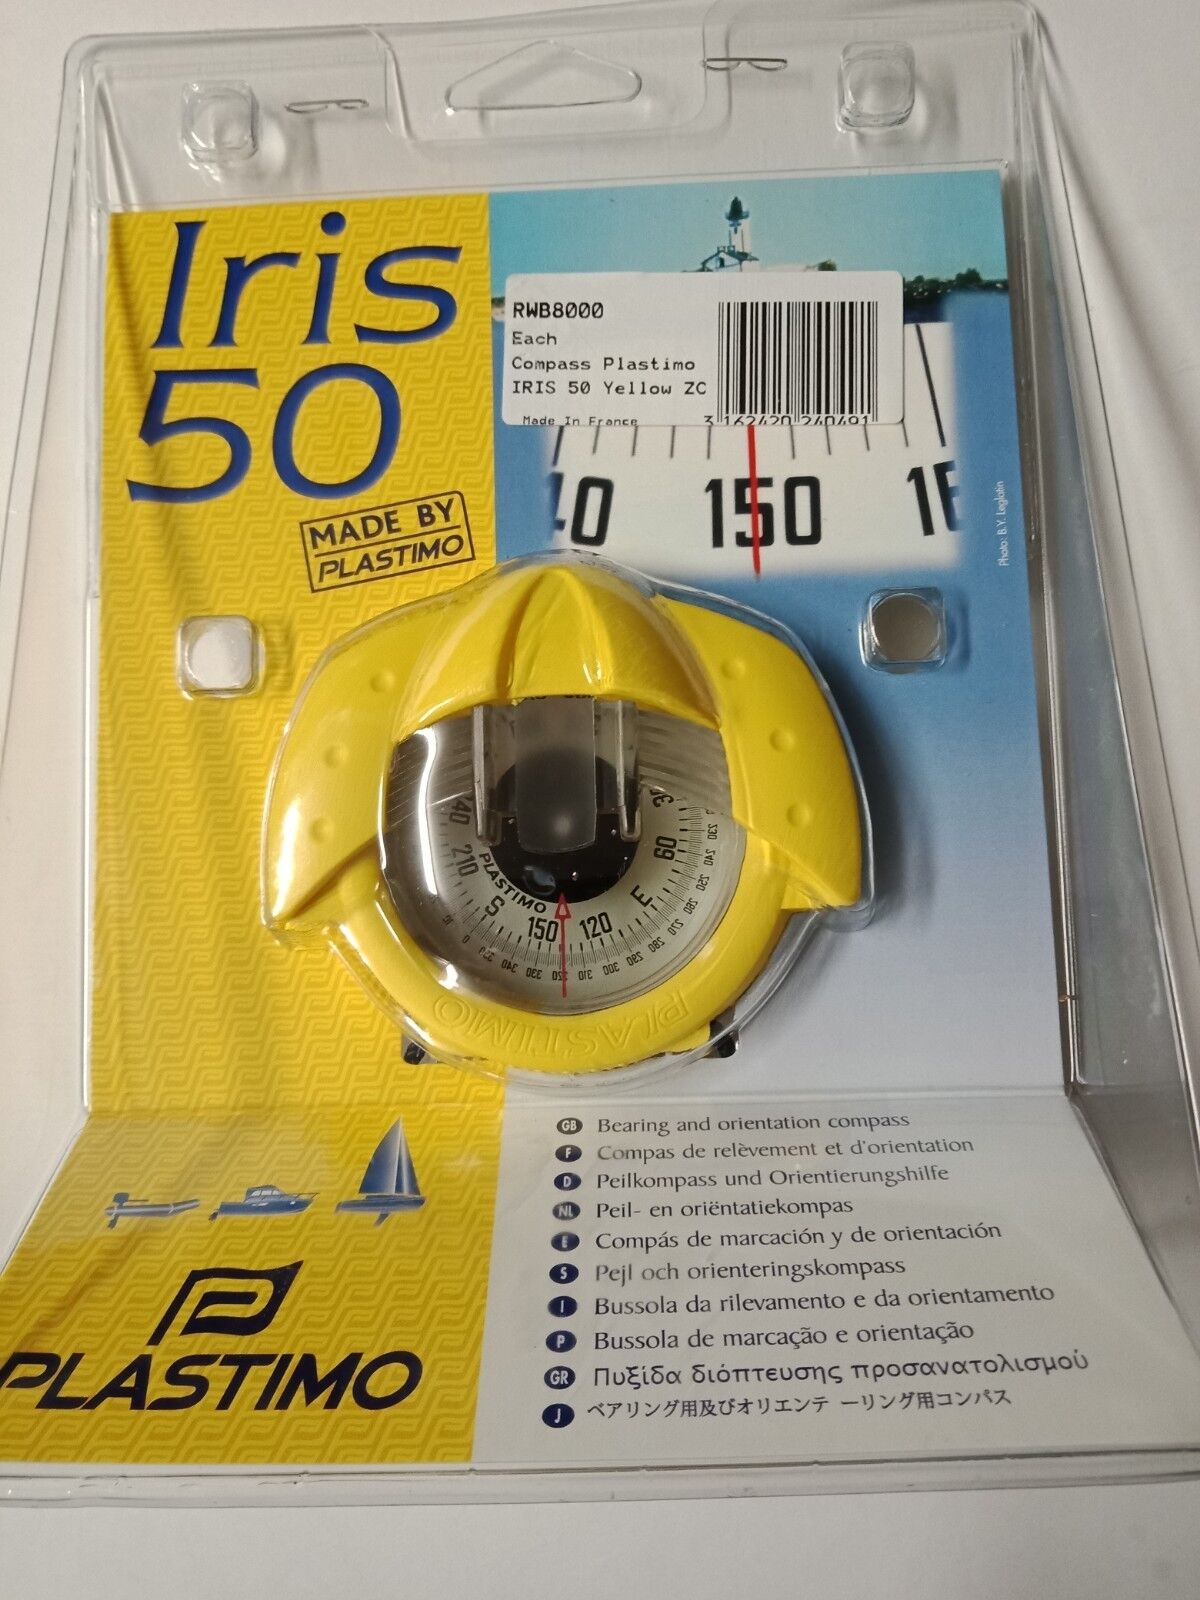 Orienteering Compass Bearing Boat Compass Plastimo Iris 50 Hand Bearing Compass Compass Zone C 1b10bf